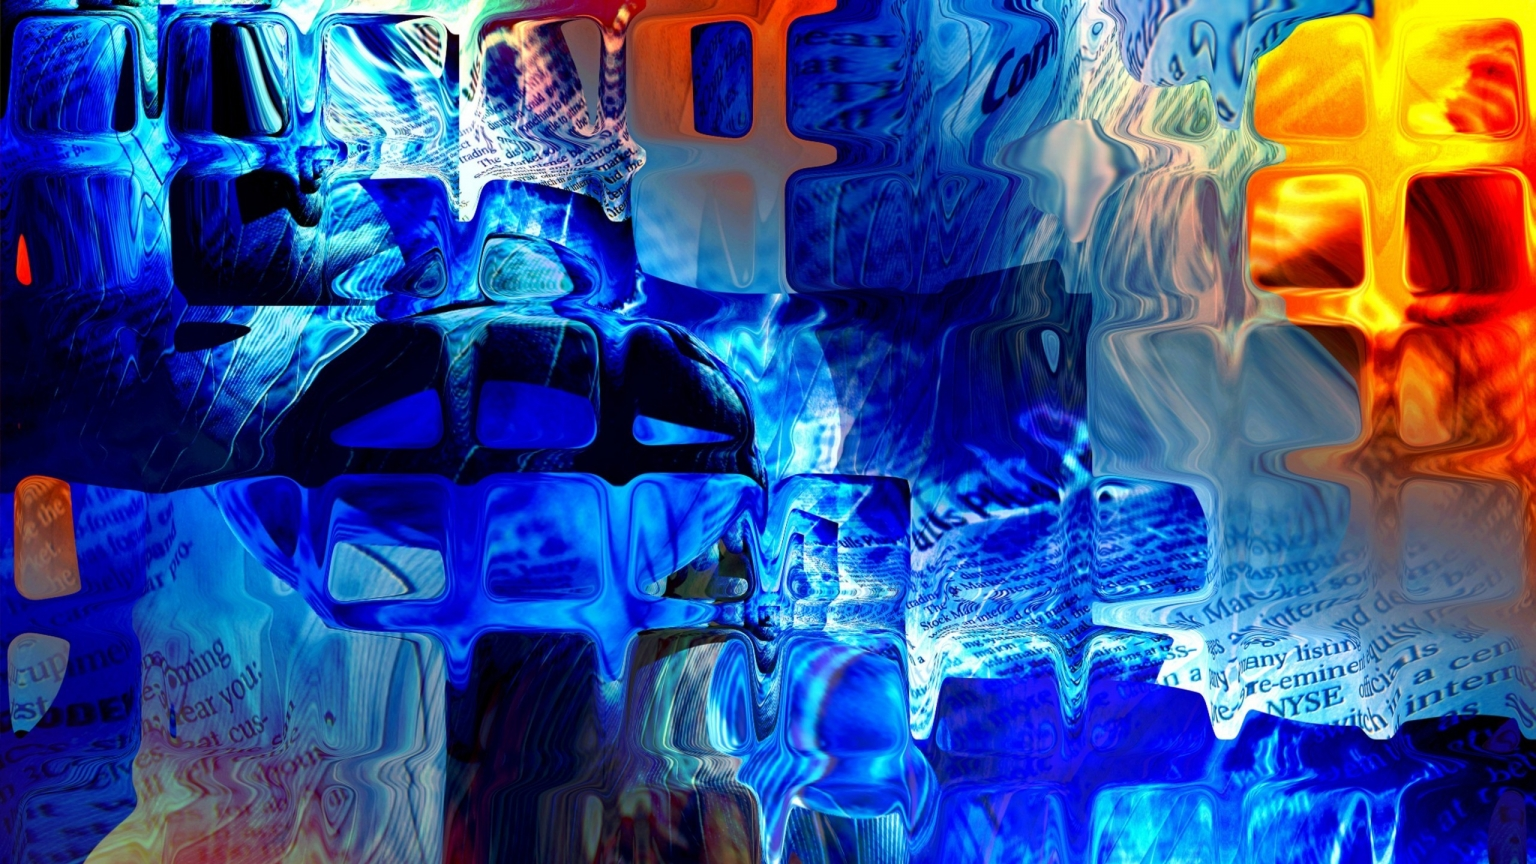 Abstract Glass Paint for 1536 x 864 HDTV resolution